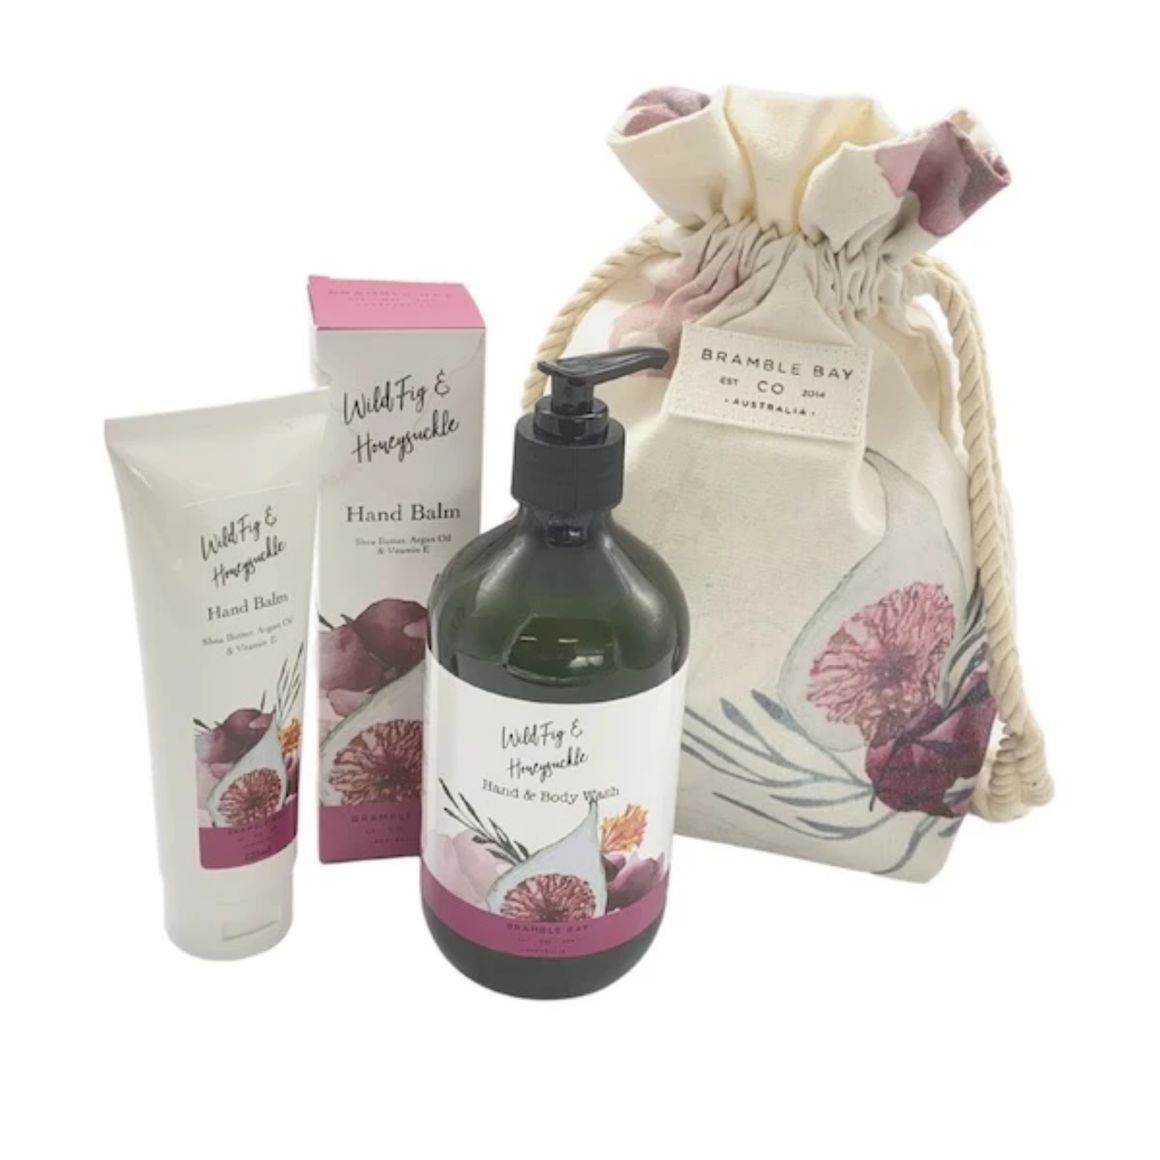 GIFT BAG WILD FIG & HONEYSUCKLE (HAND BALM, BODY WASH & SPONGE)